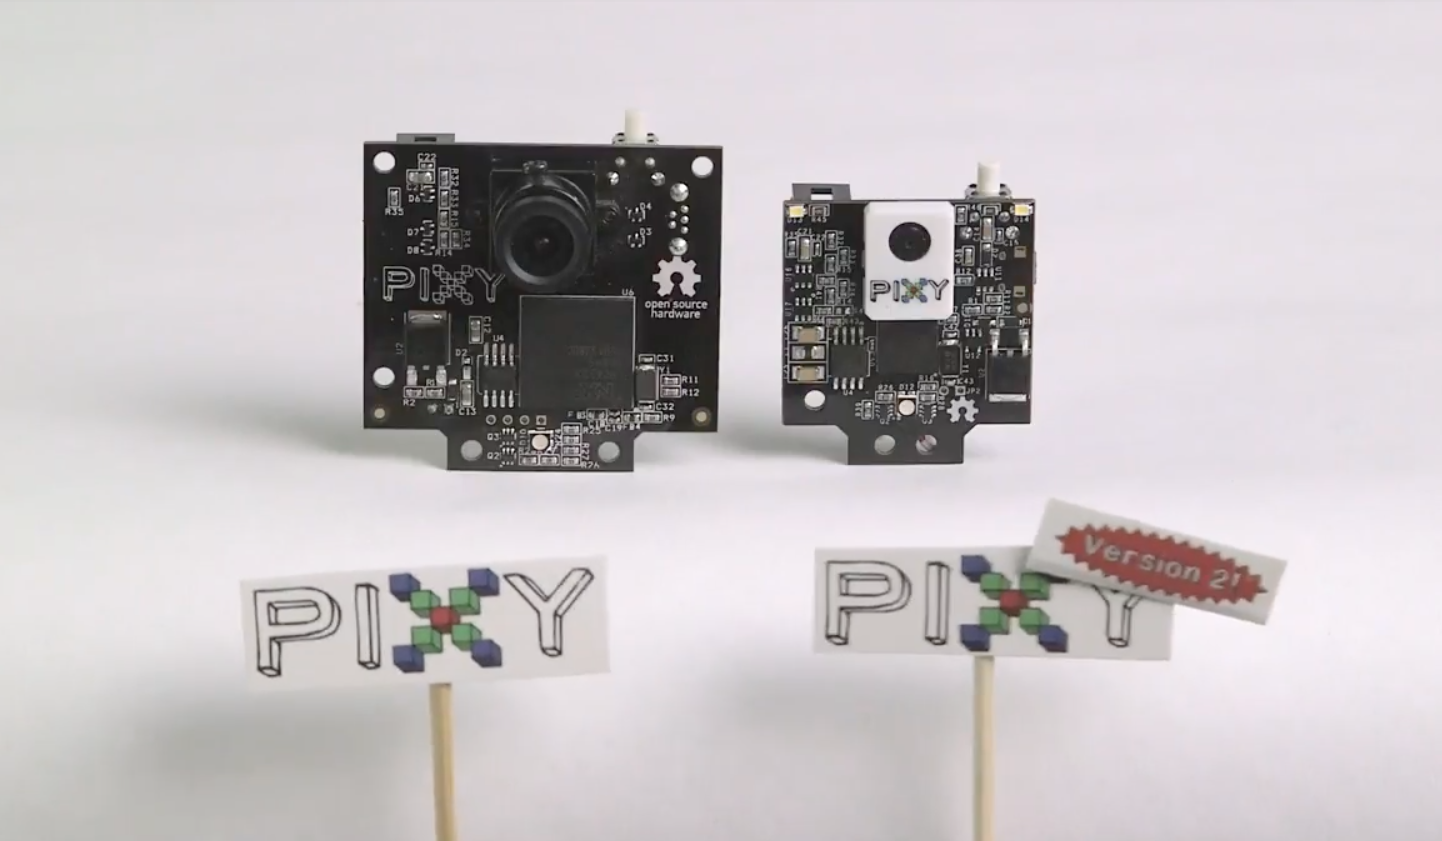 Pixy2 CV Sensor Is Smaller, Faster, and More Capable Than